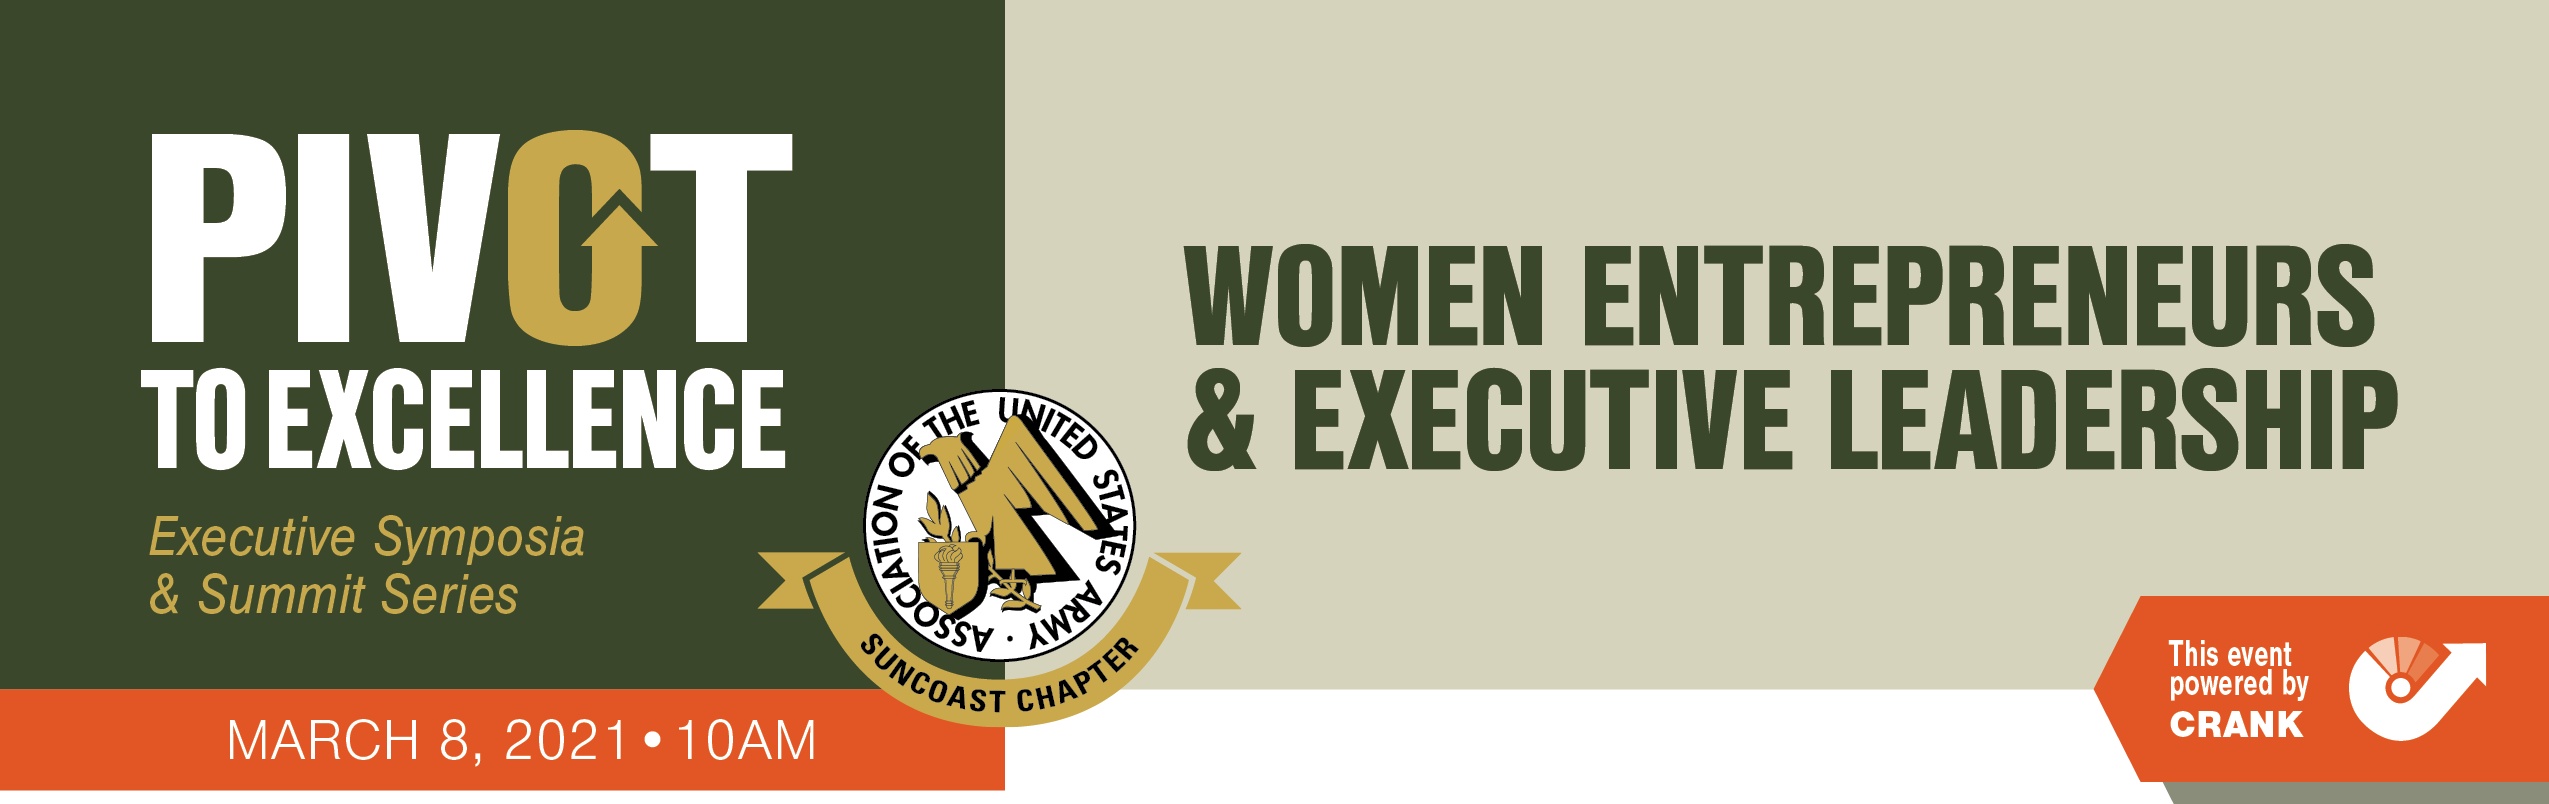 PIVOT TO EXCELLENCE Women's History